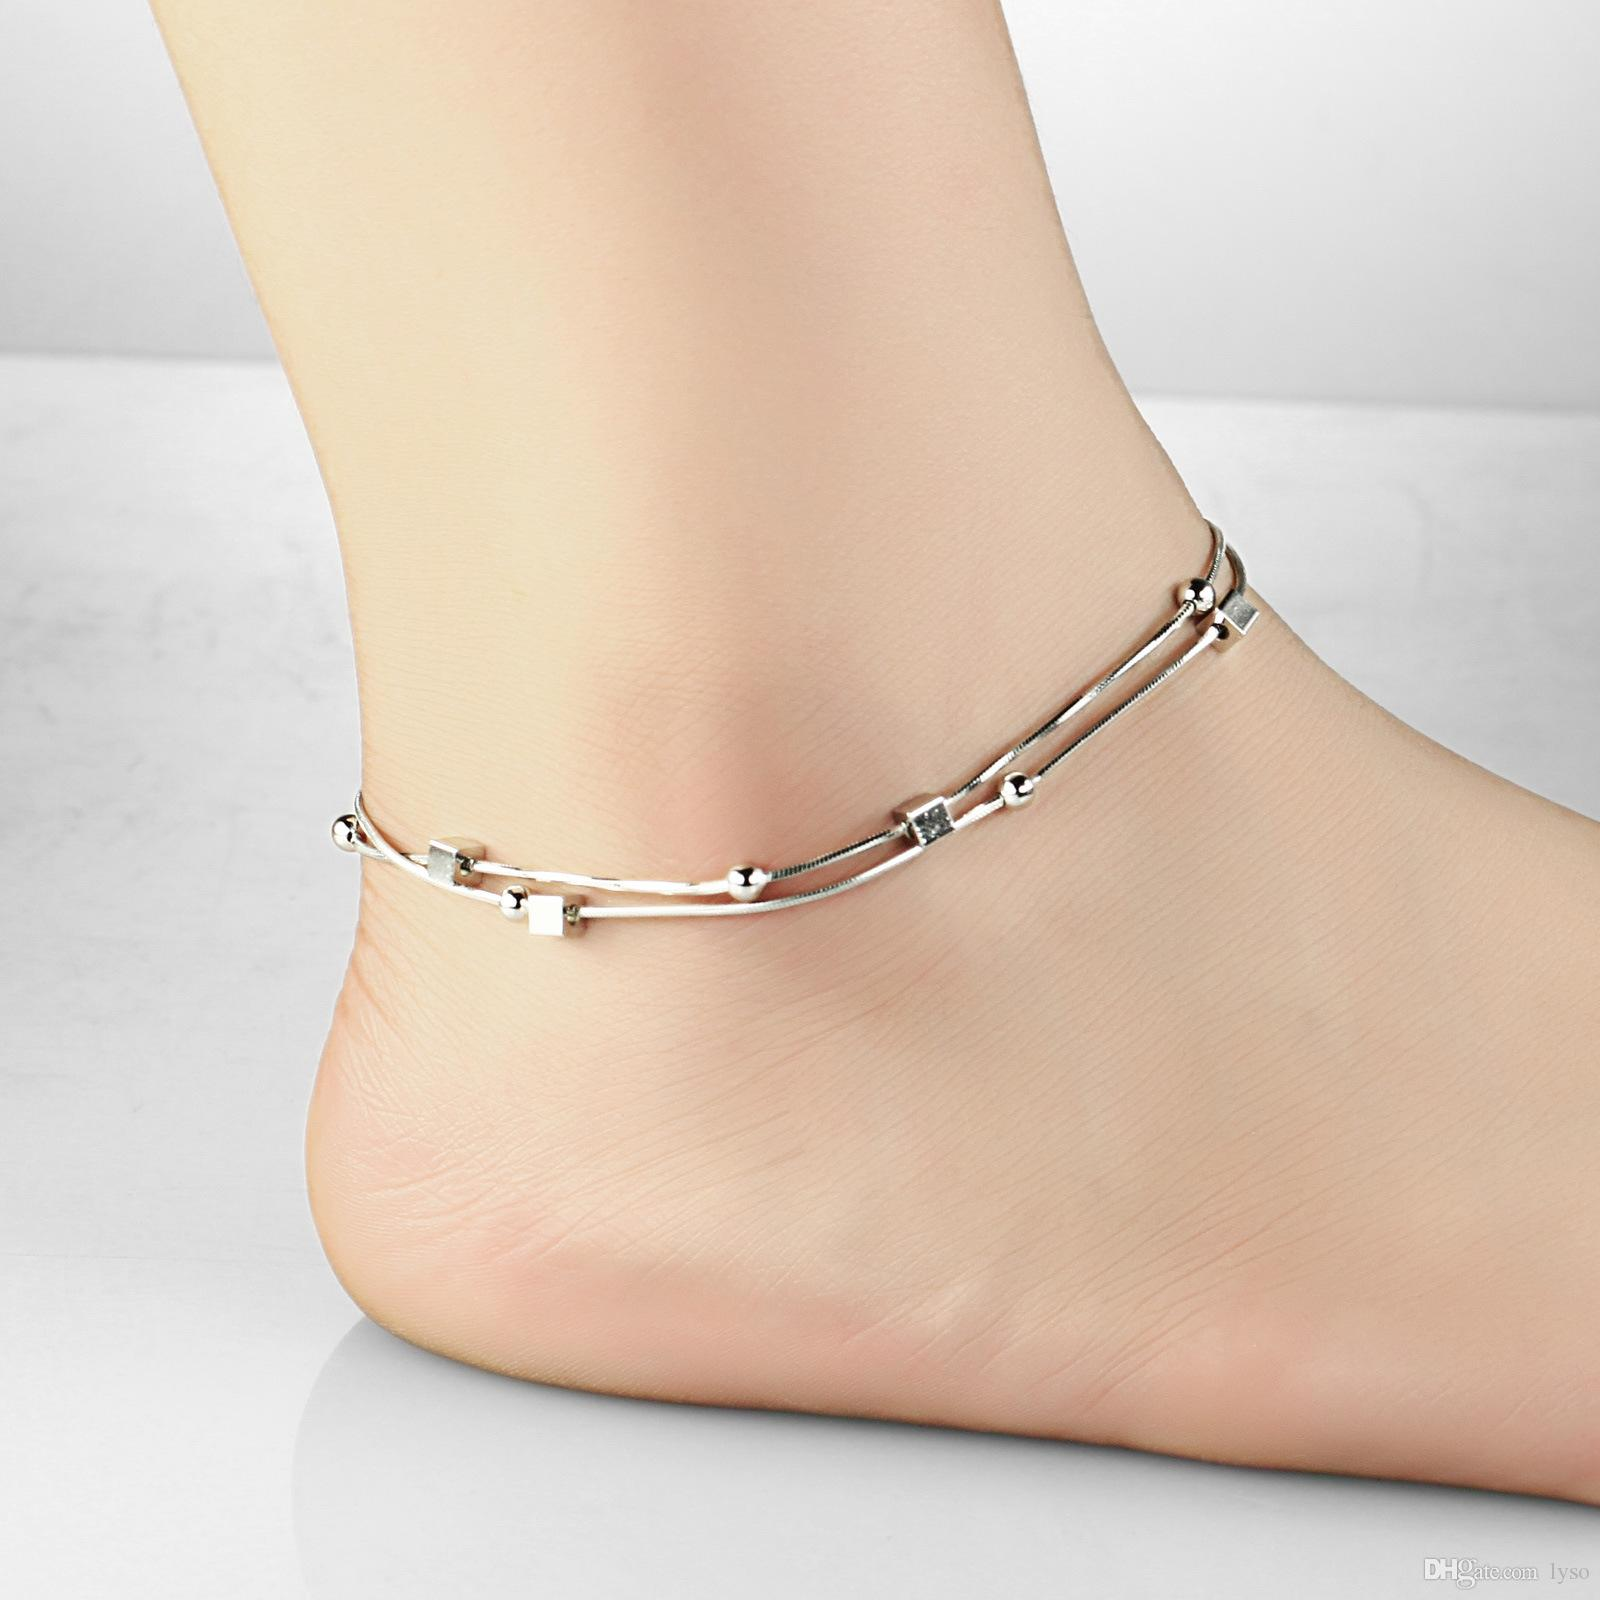 necklace all silver bracelet plated anklet chain sizes sterling rose gold rolo long over